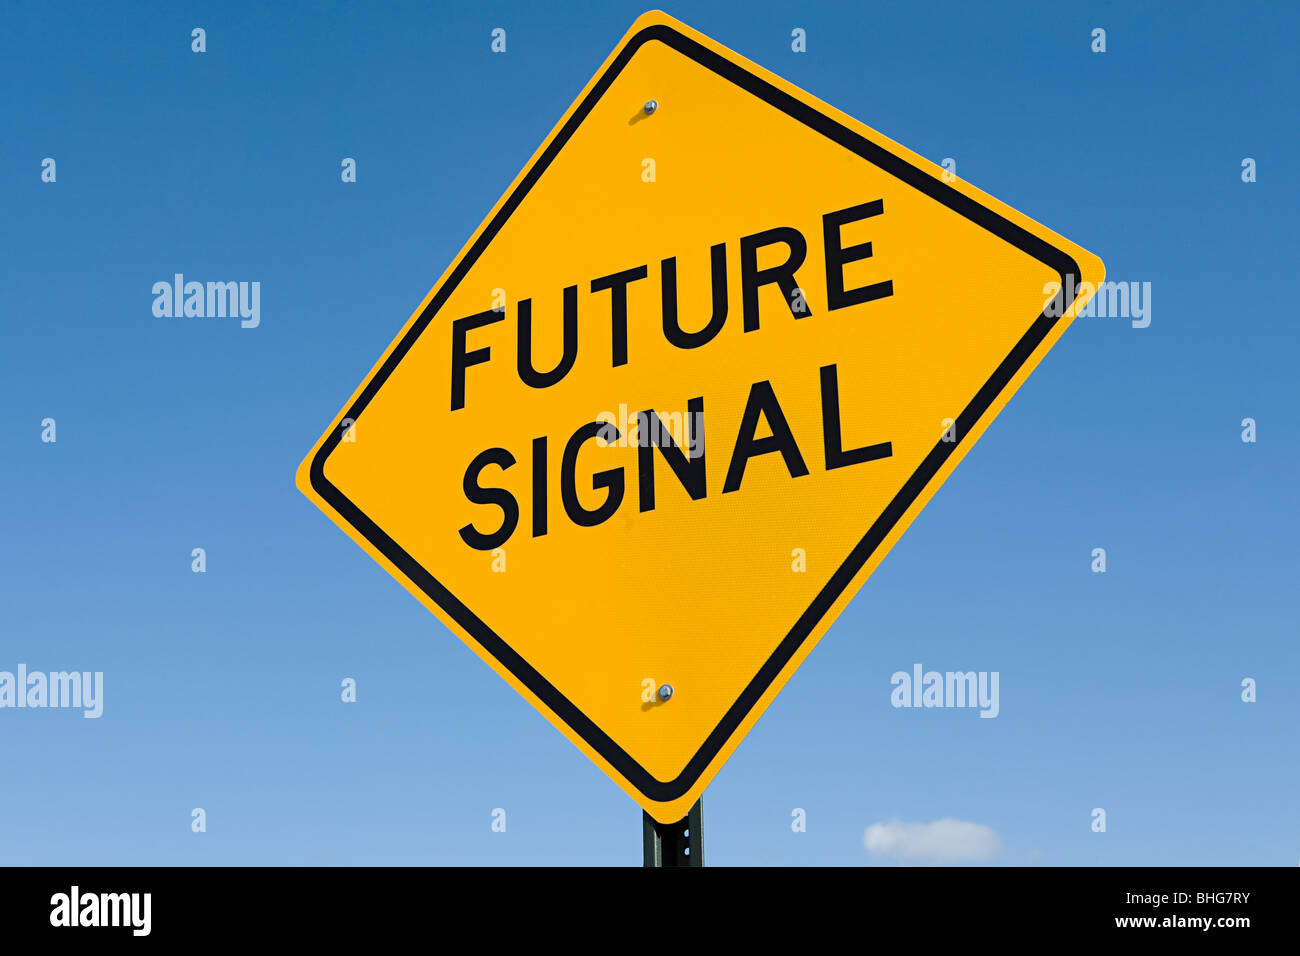 Future signal sign - Stock Image